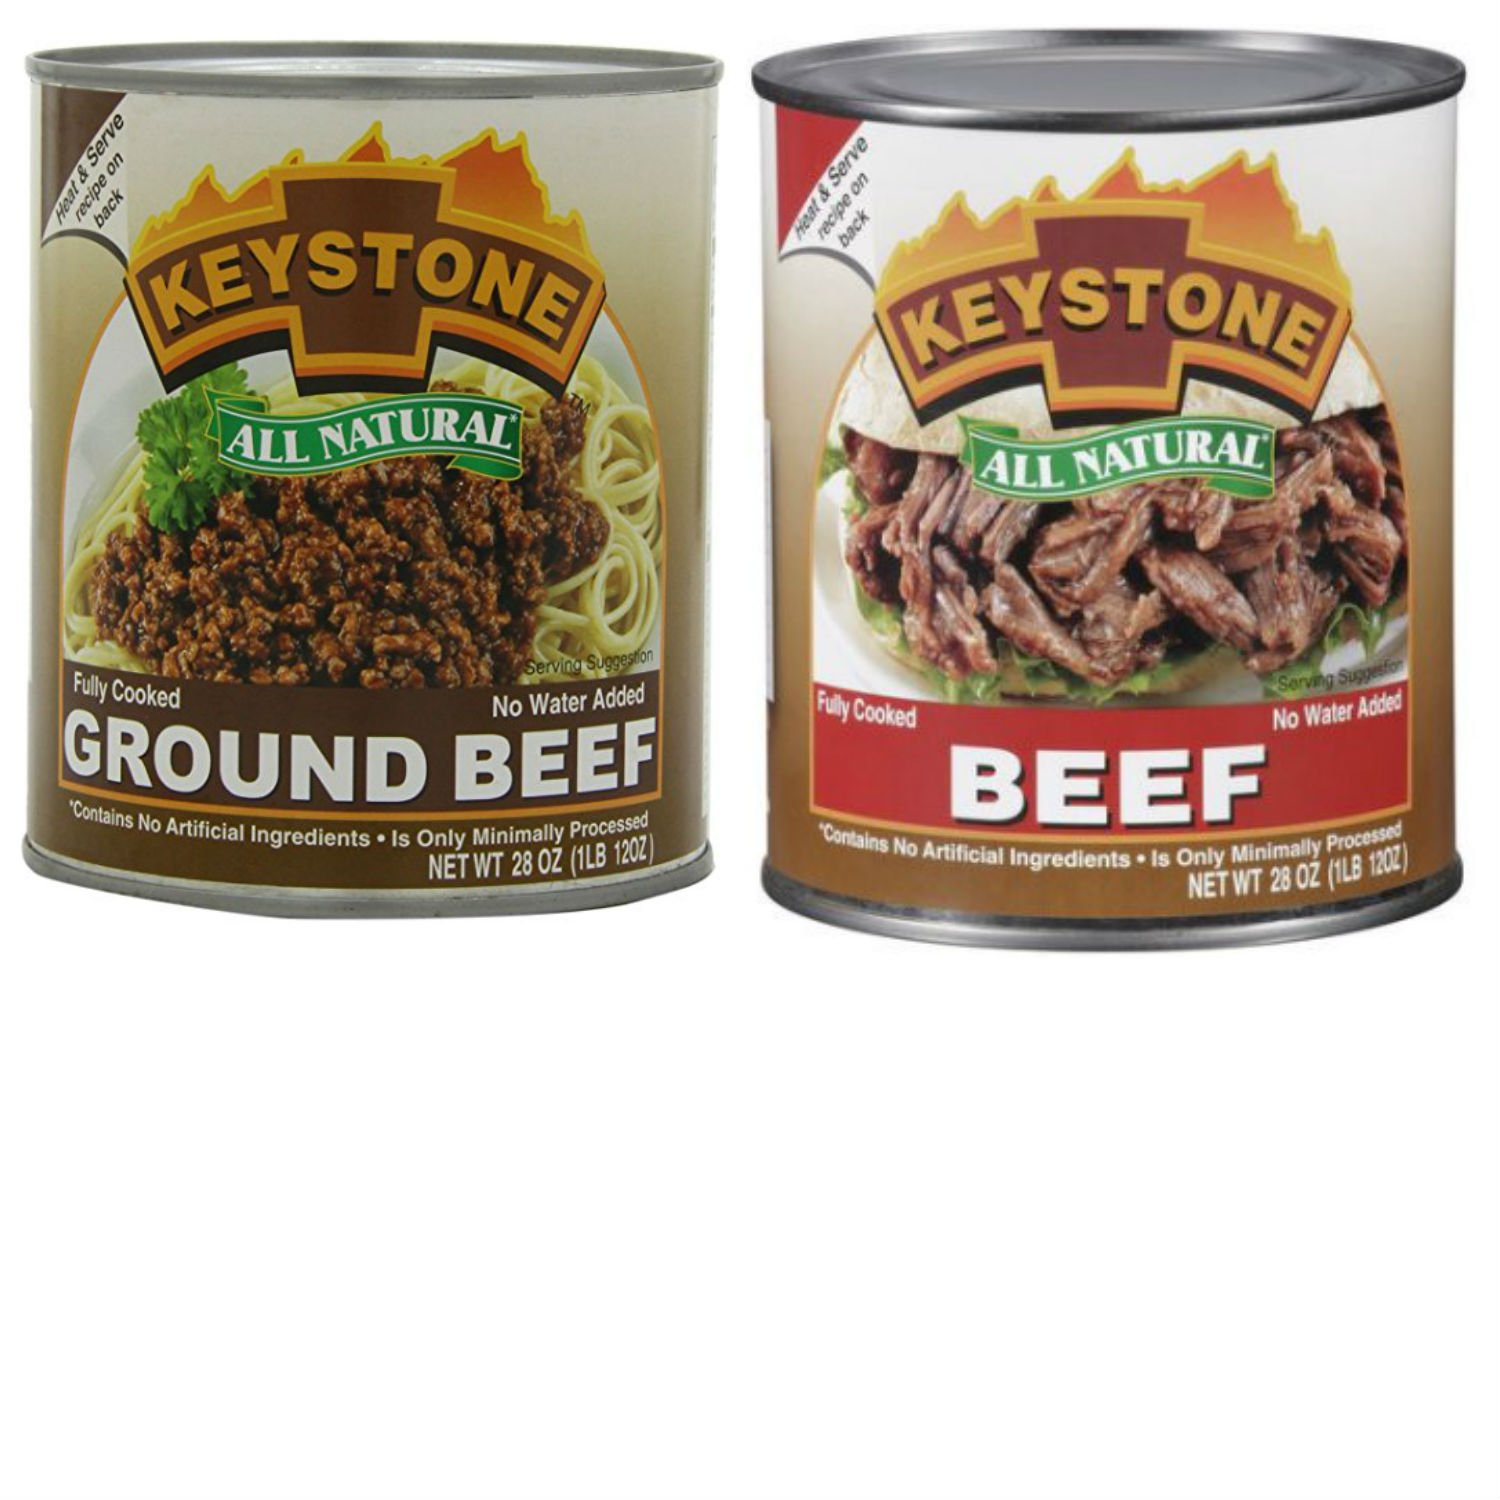 Bundle Keystone Canned Meats Variety Pack With Keystone Ground Beef and Keystone Beef. Convenient Shopping For 2 Popular Canned Meat Selections In 1 Order. Surprisingly Delicious!